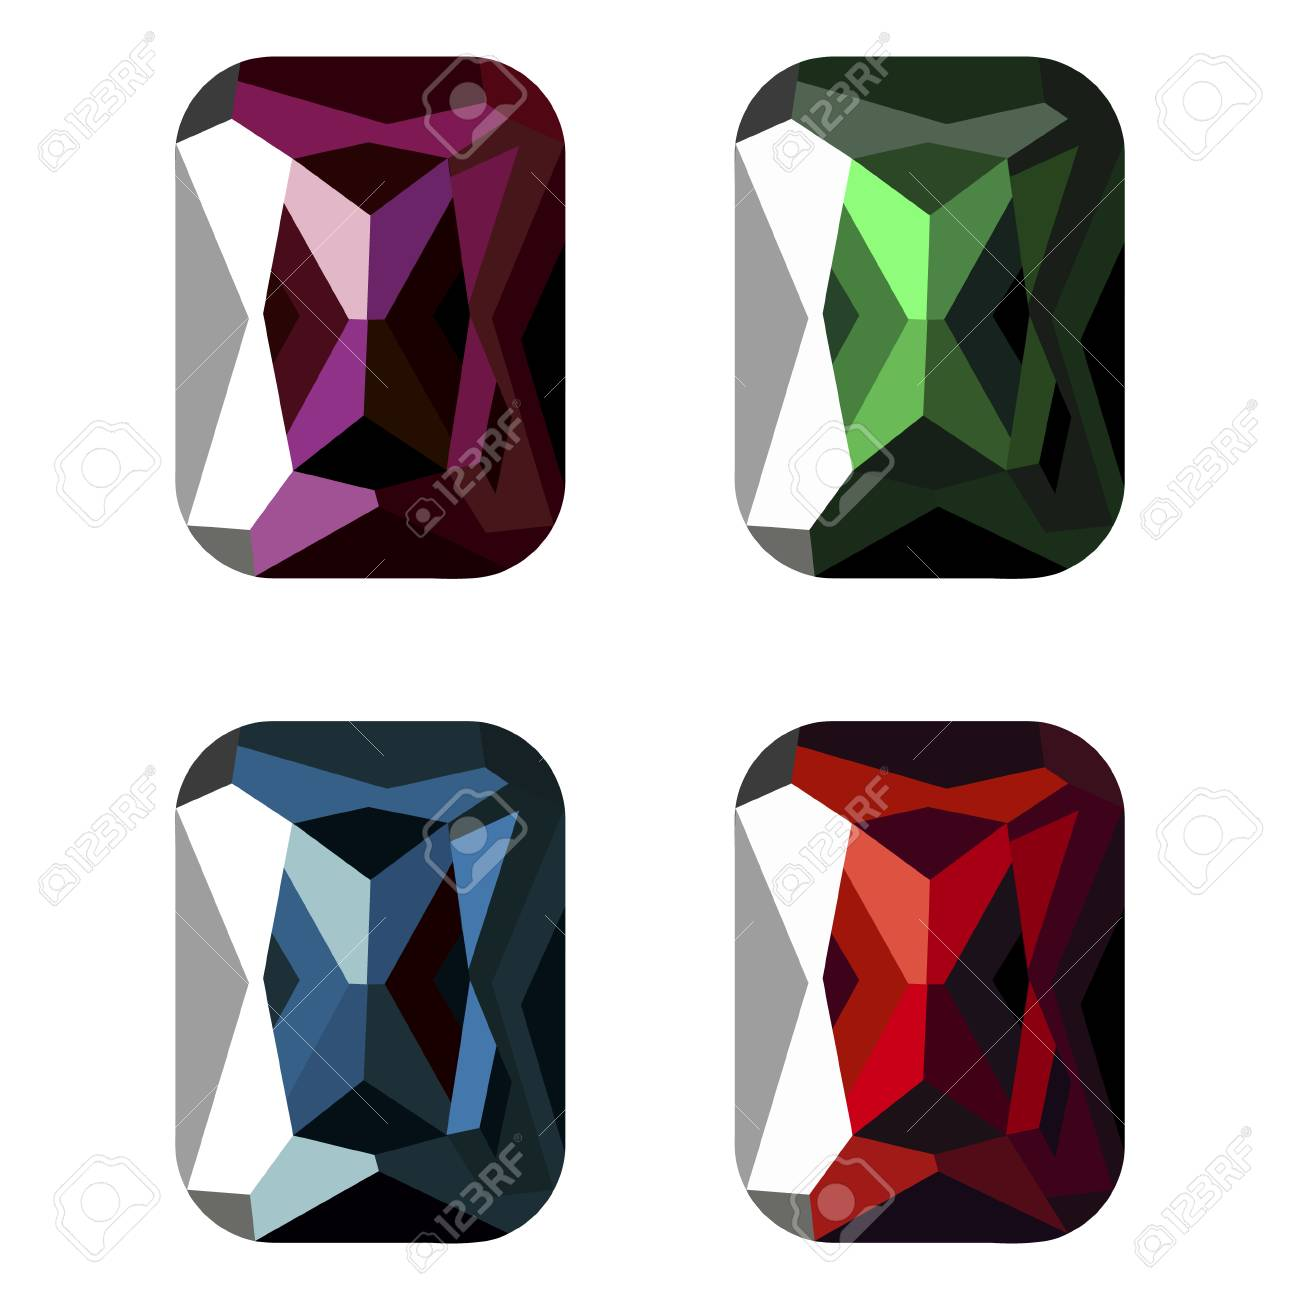 Set of vector illustration of gems, isolated over white background. Graphic illustration. - 62372375